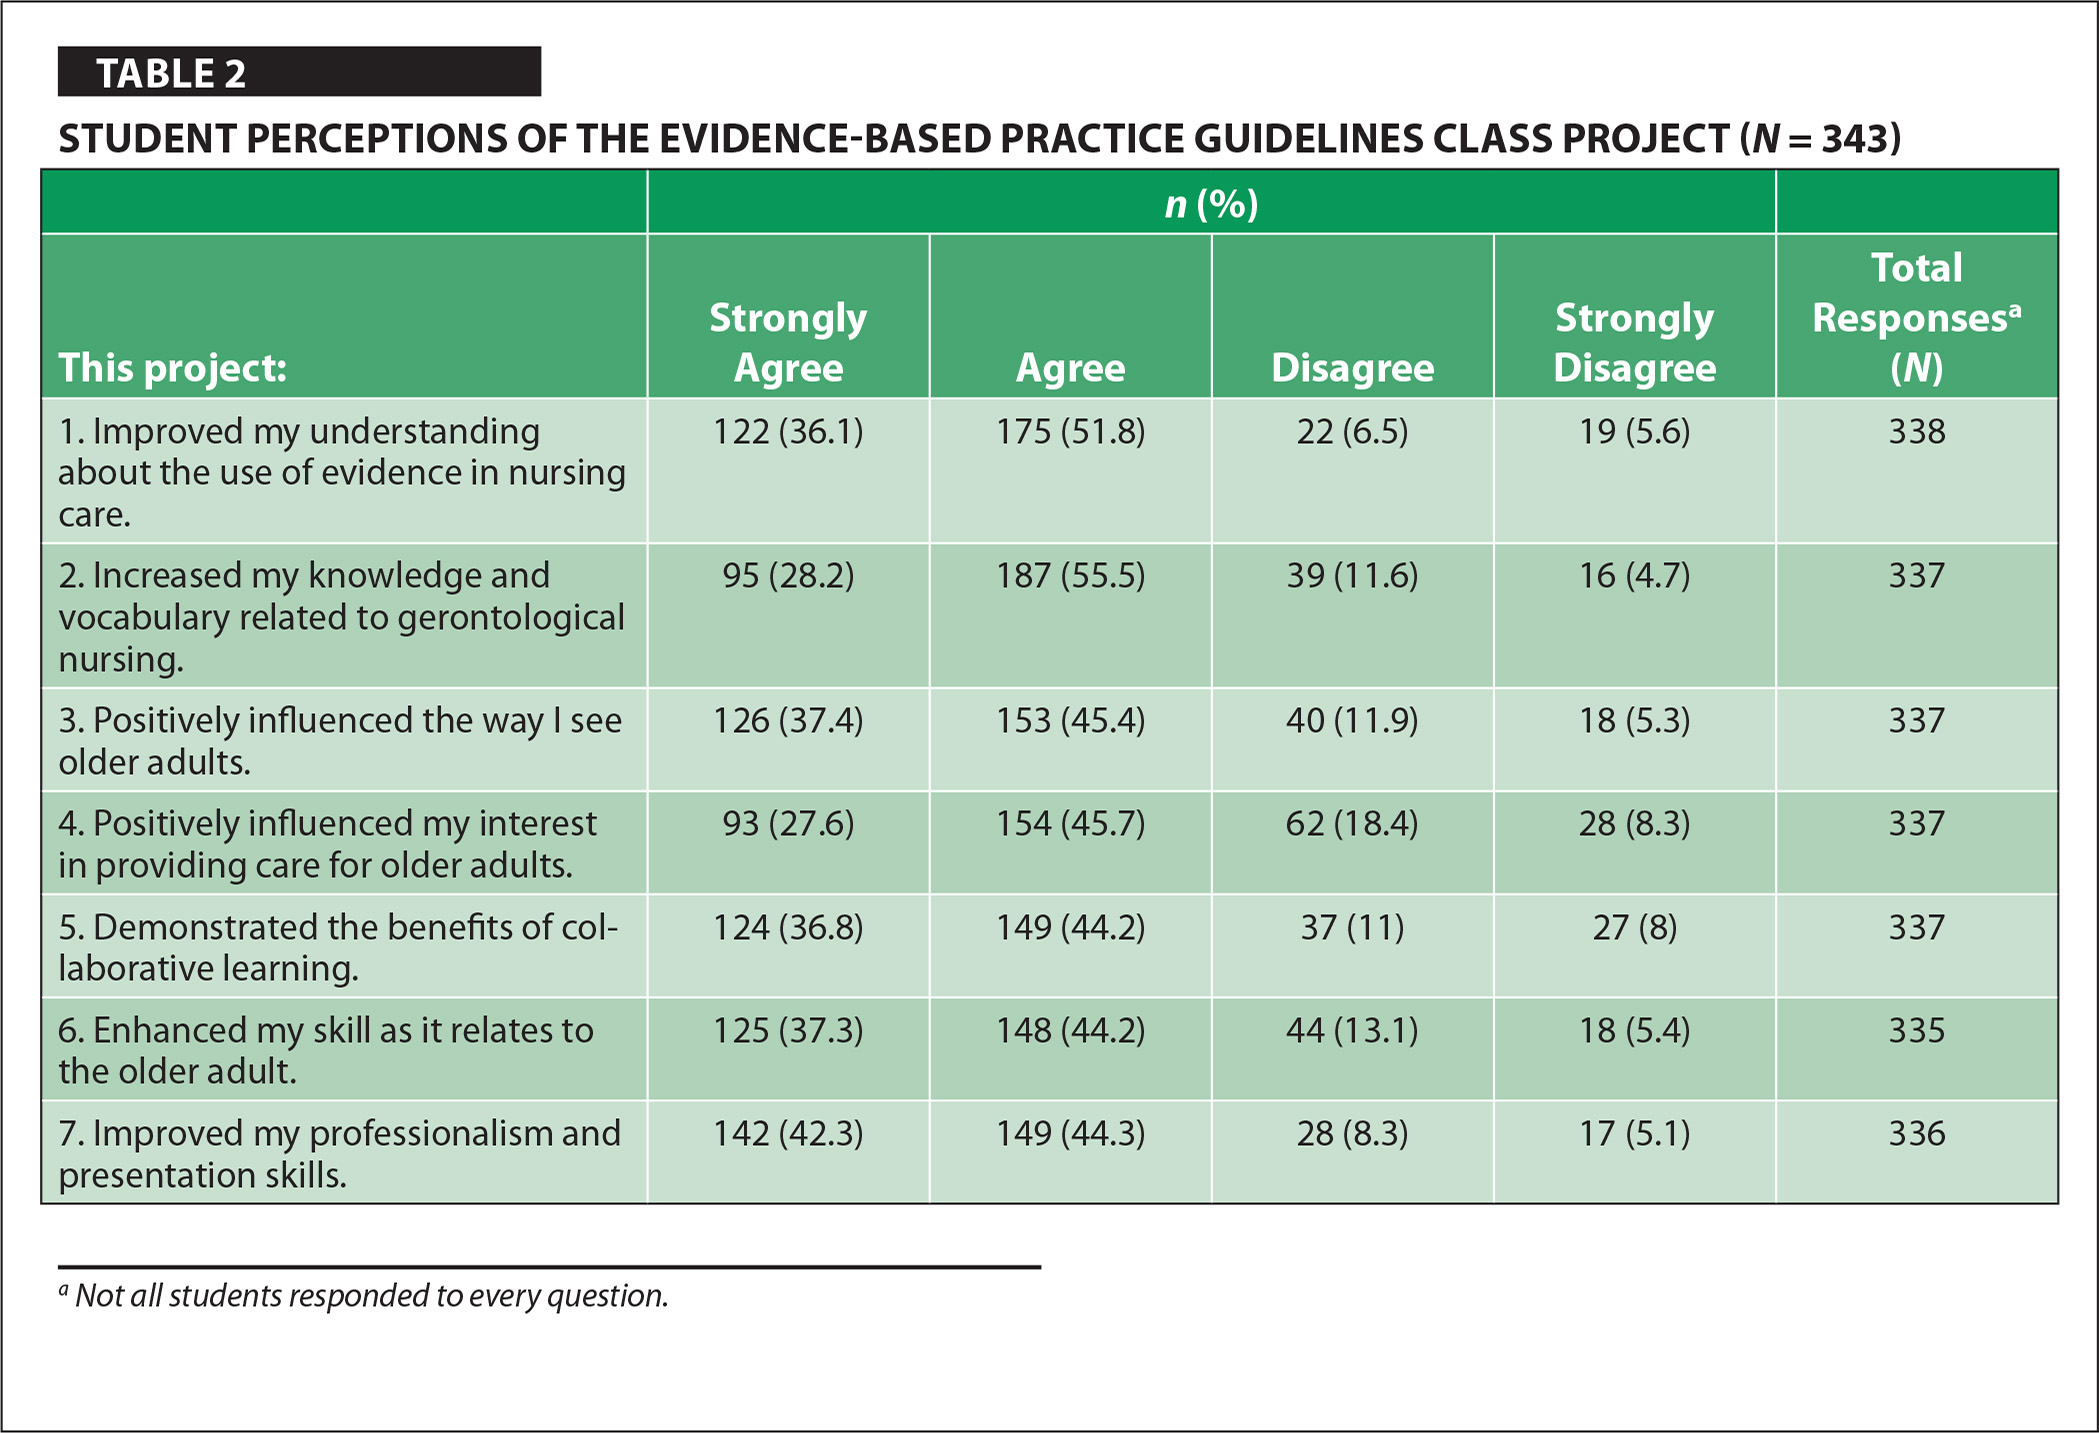 Student Perceptions of the Evidence-Based Practice Guidelines Class Project (N = 343)